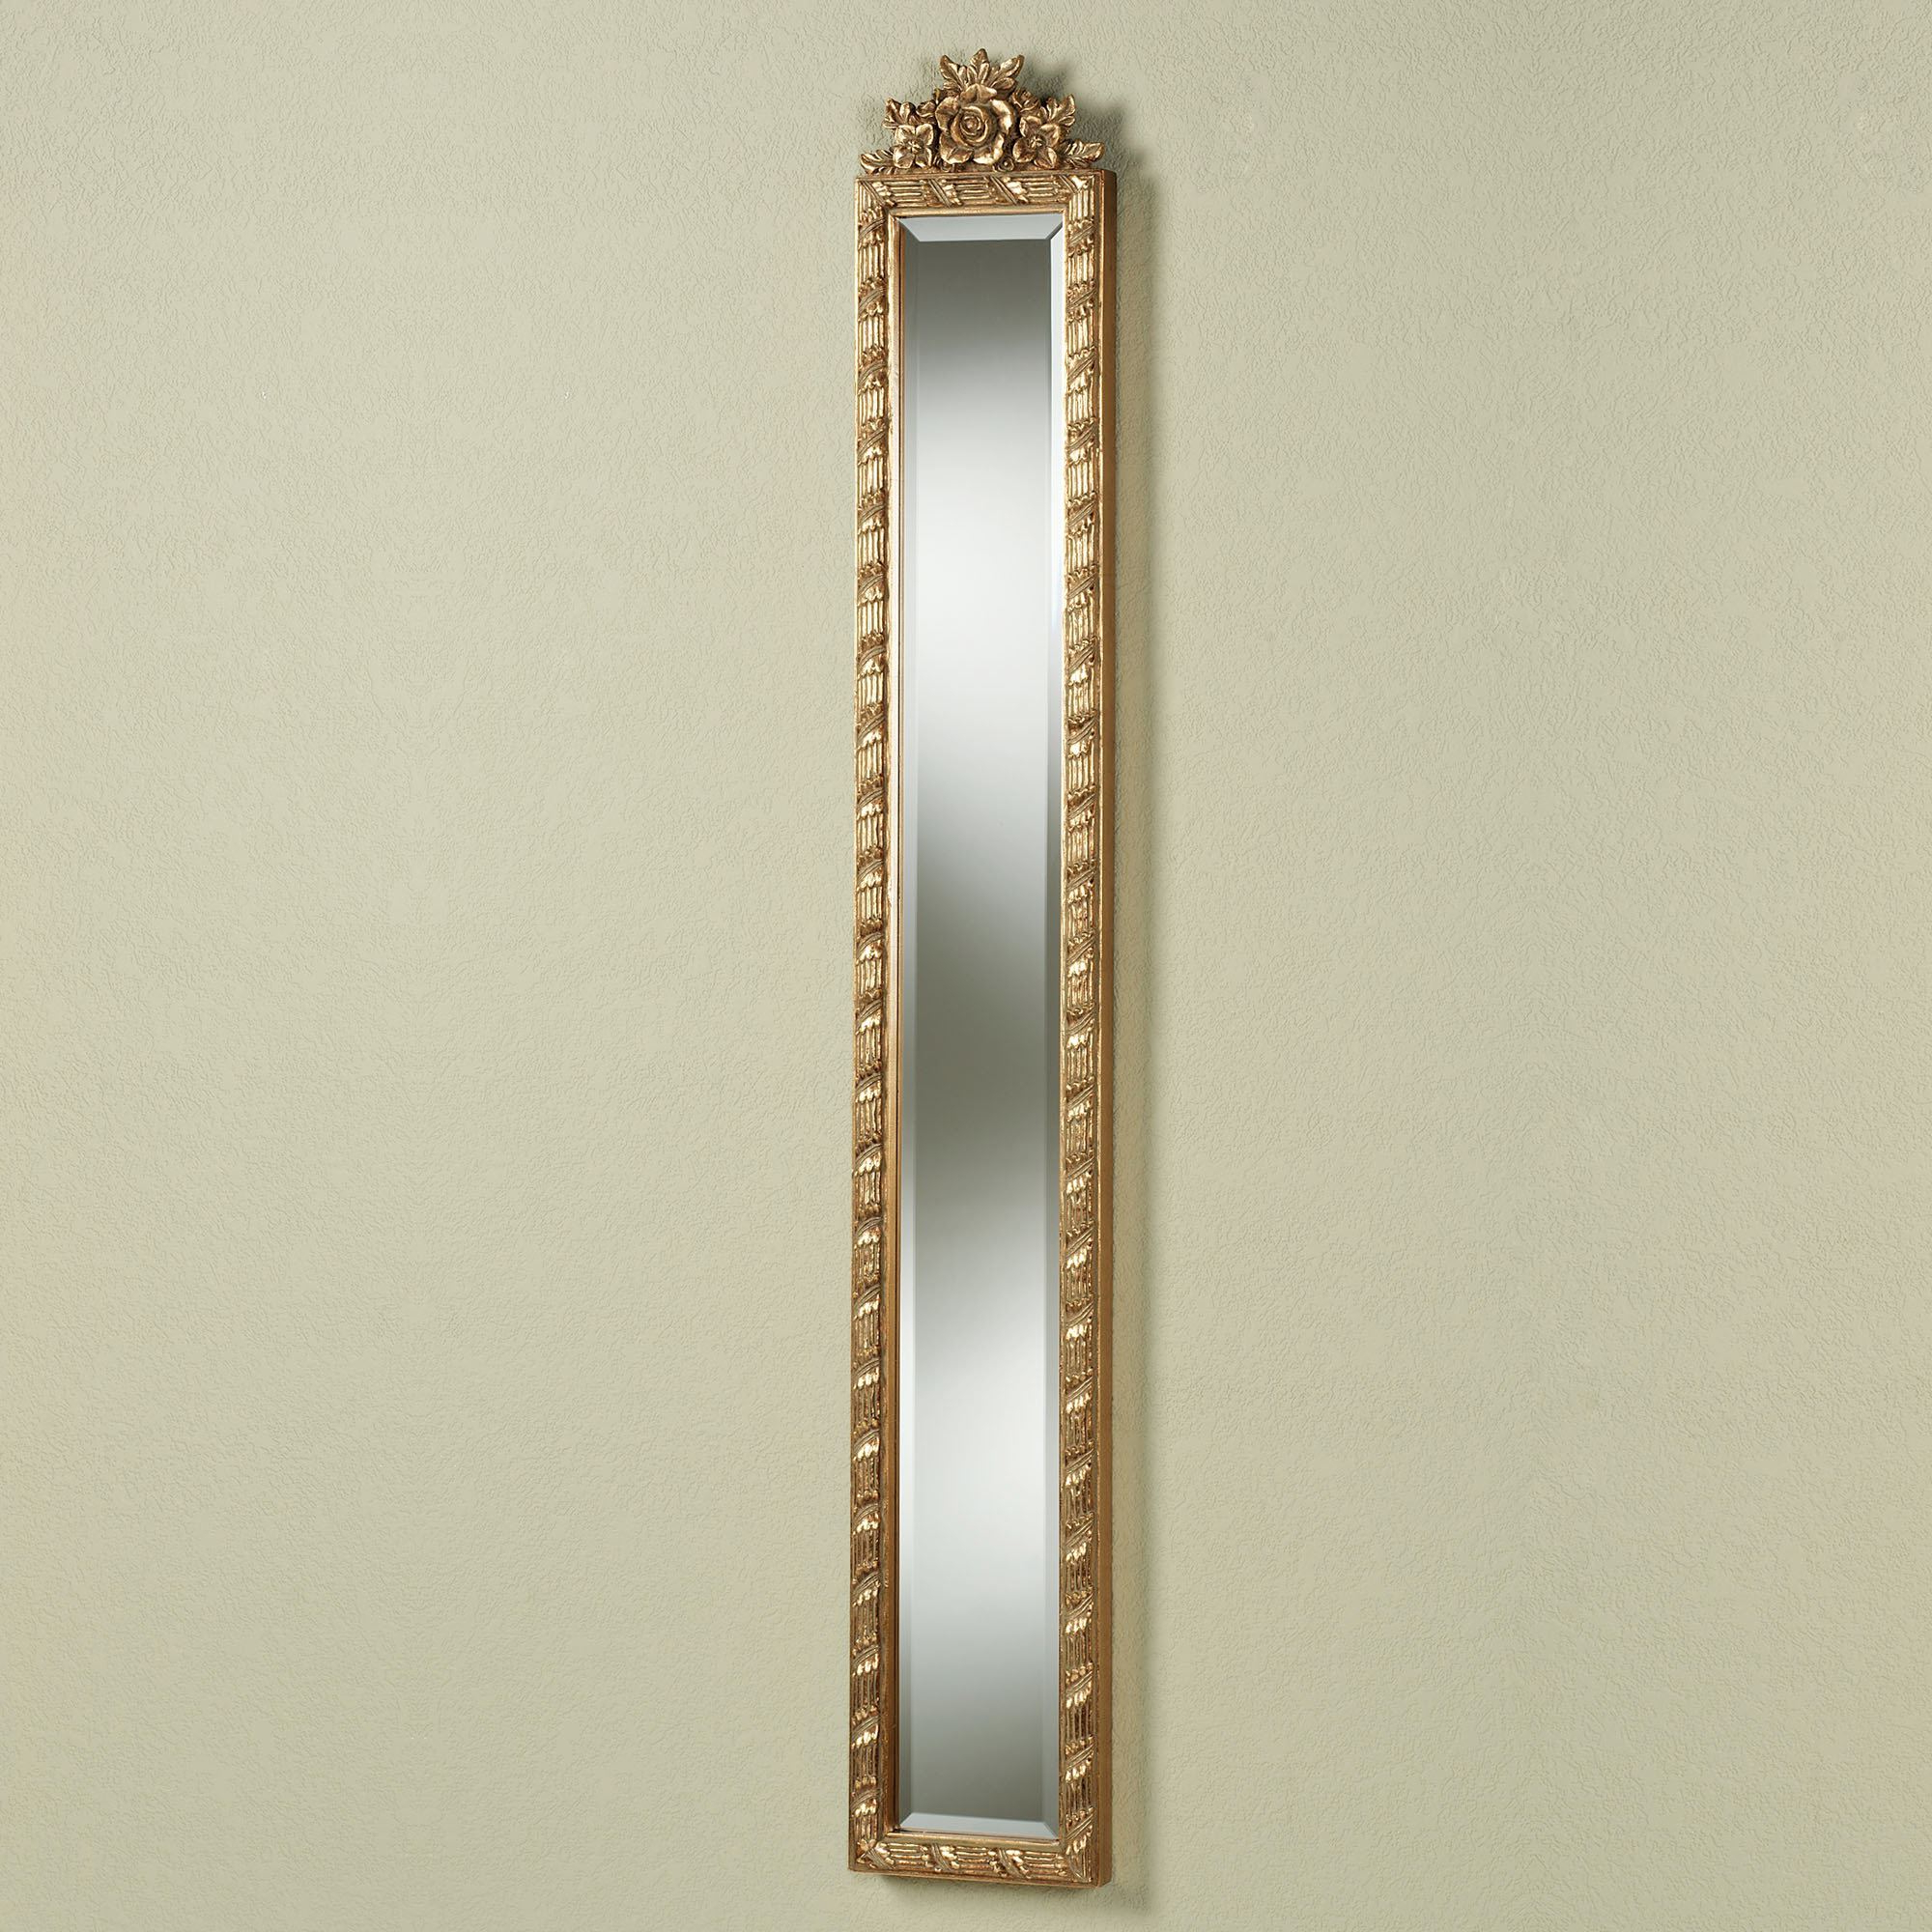 Popular Tall Narrow Wall Mirrors Inside Giuliana Antique Gold Floral Wall Mirror Panel (View 14 of 20)